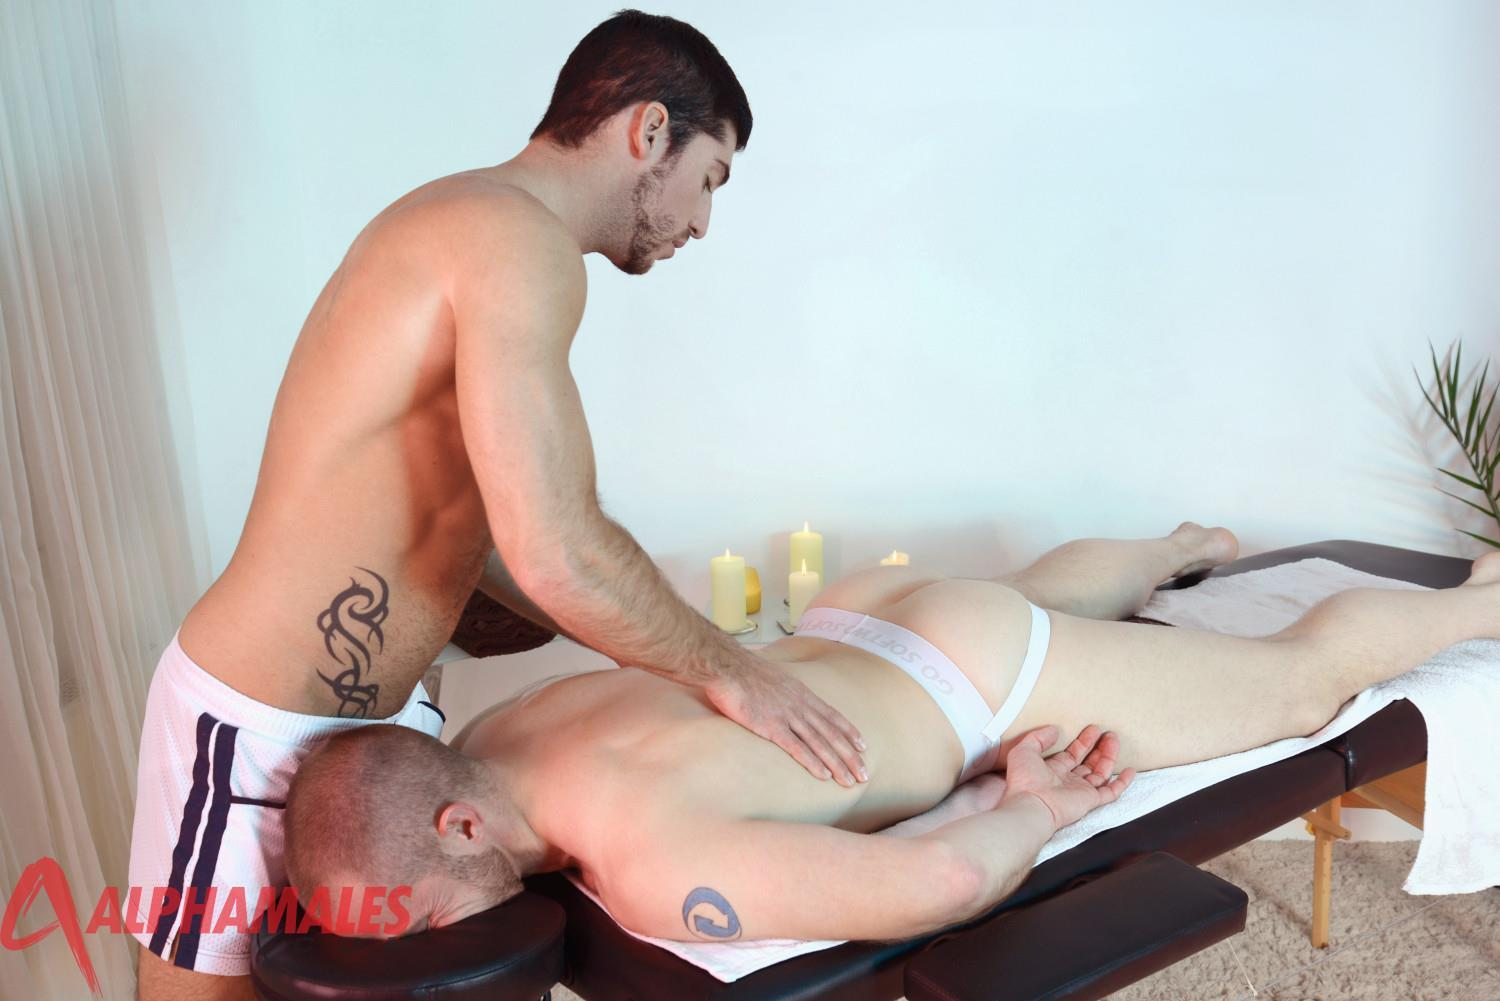 AlphaMales-Leo-Domenico-and-Adam-Herst-Jocks-With-Big-Uncut-Cocks-01 Jocks With Big Uncut Cocks Fucking During A Massage